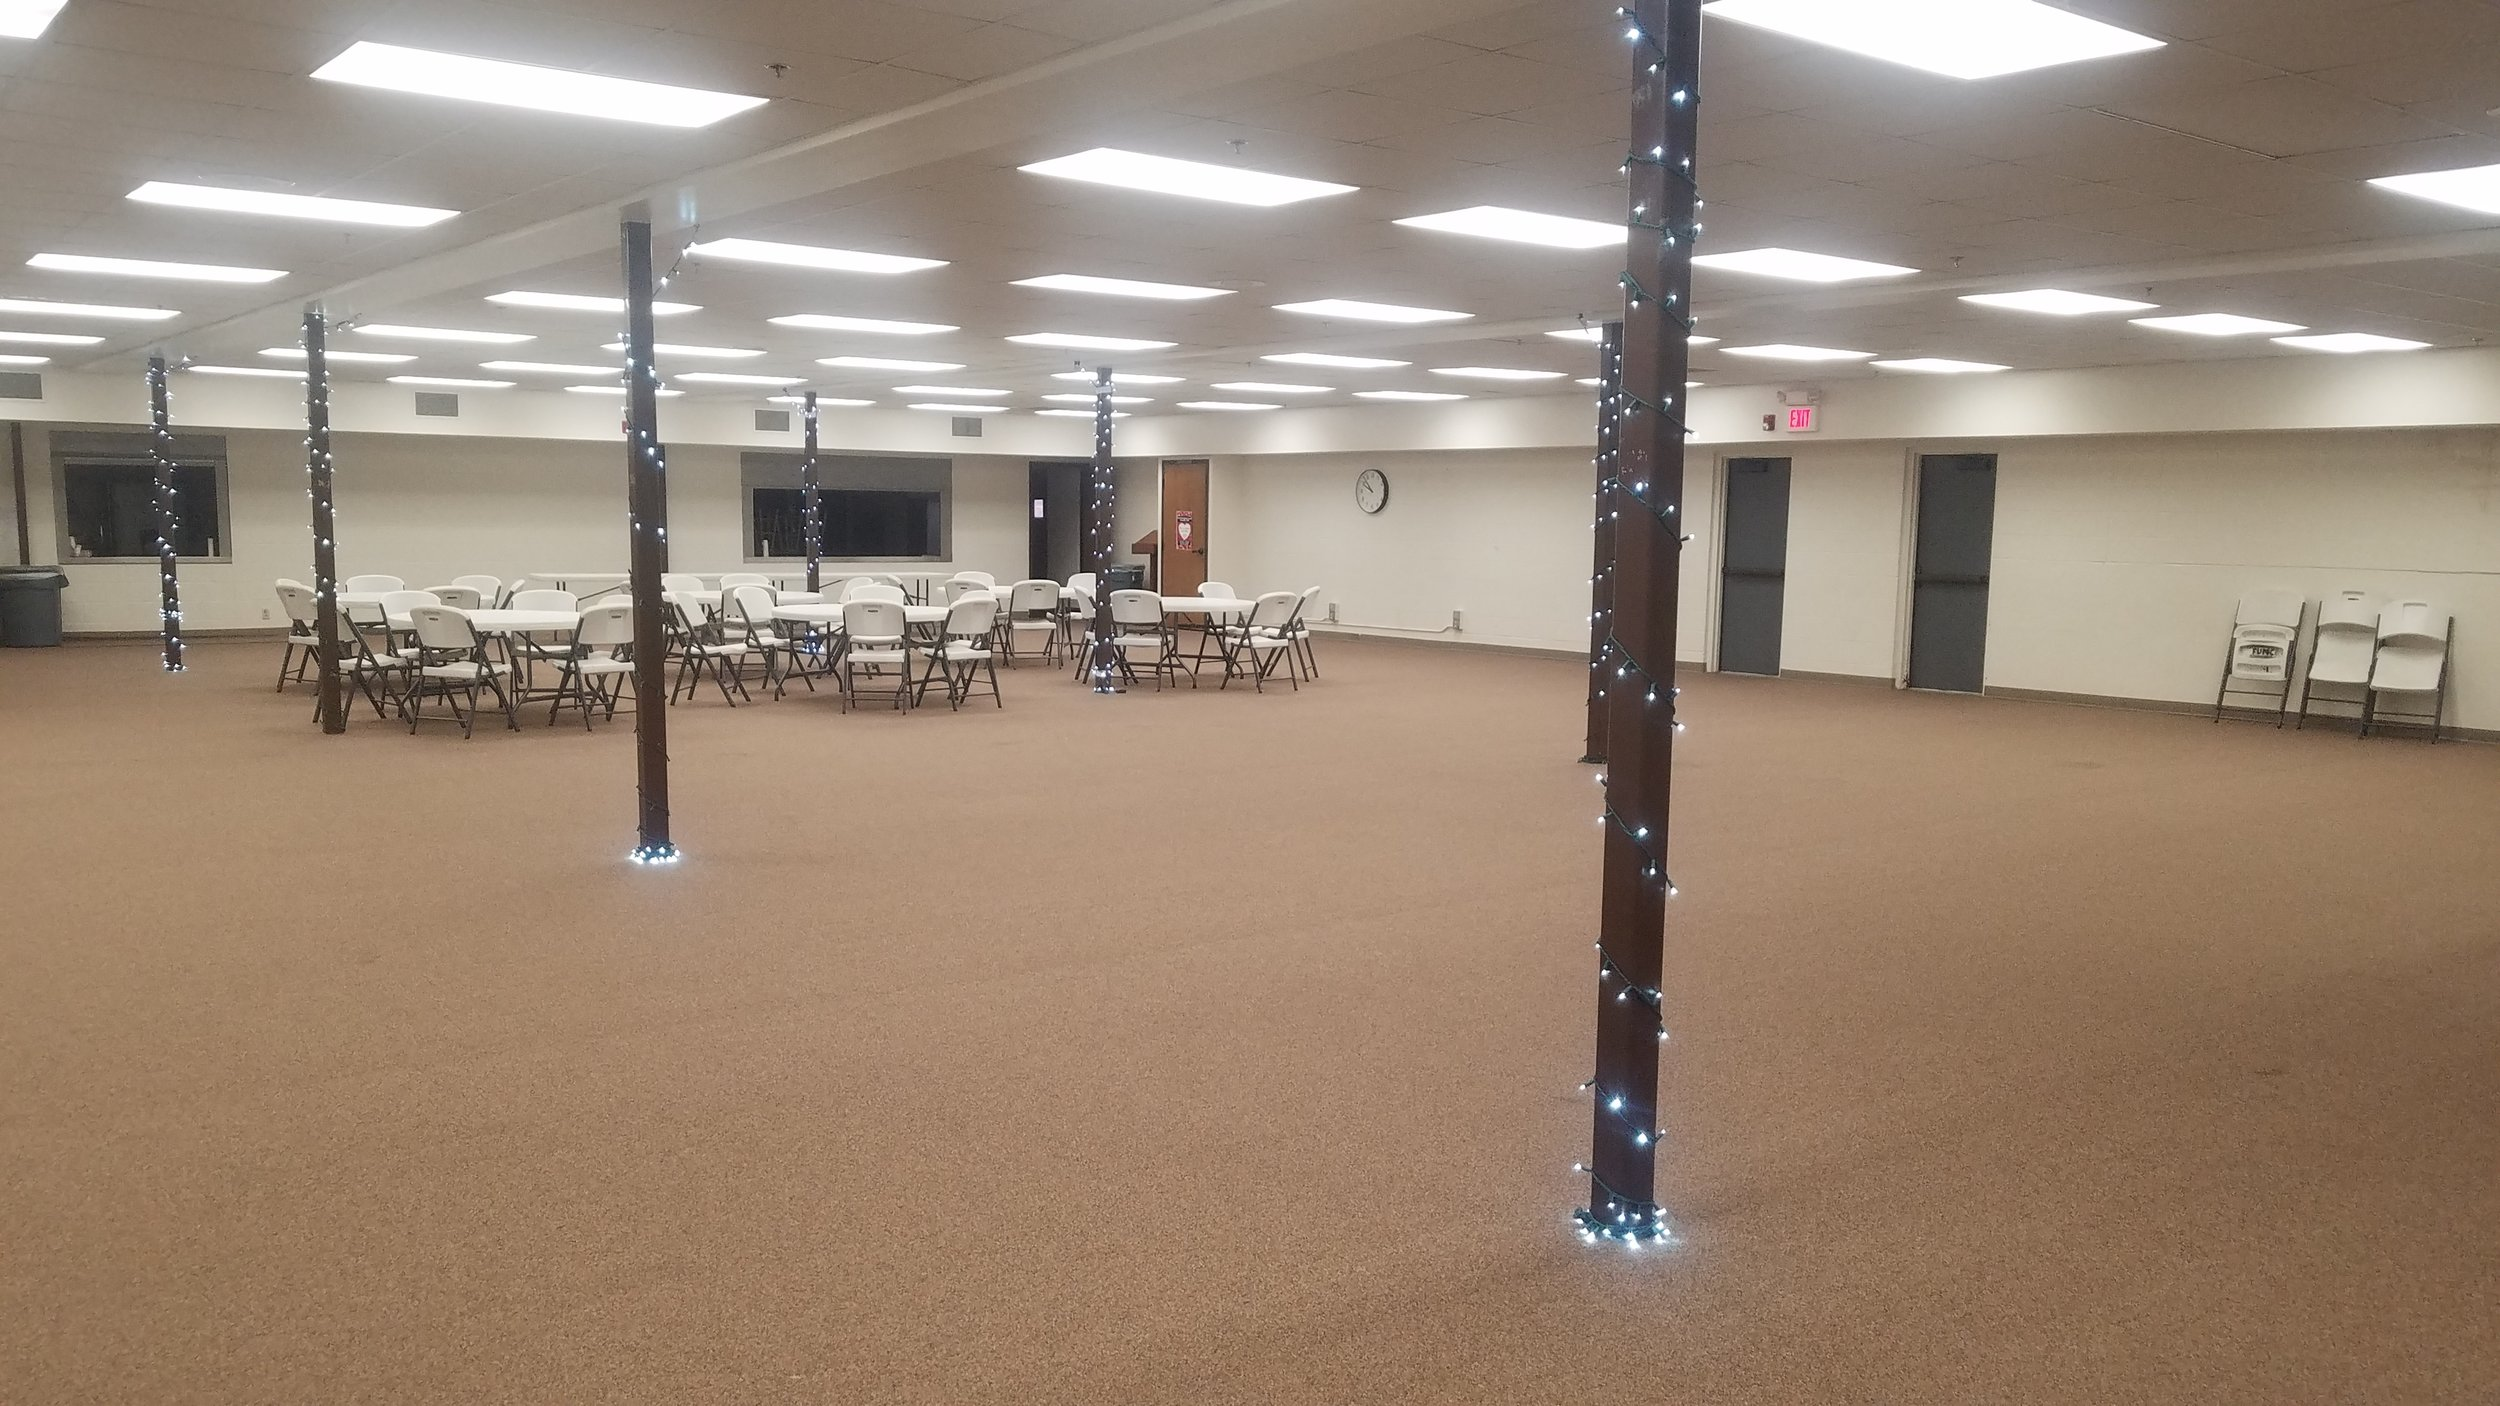 Christian Life Center (CLC) - This 5,000 sq. ft. open room is used for many different large eventsCost for Non-Members1-3 Hours: $503-8Hours: $100Cost for non-profit organizations, schools, and membersNo cost